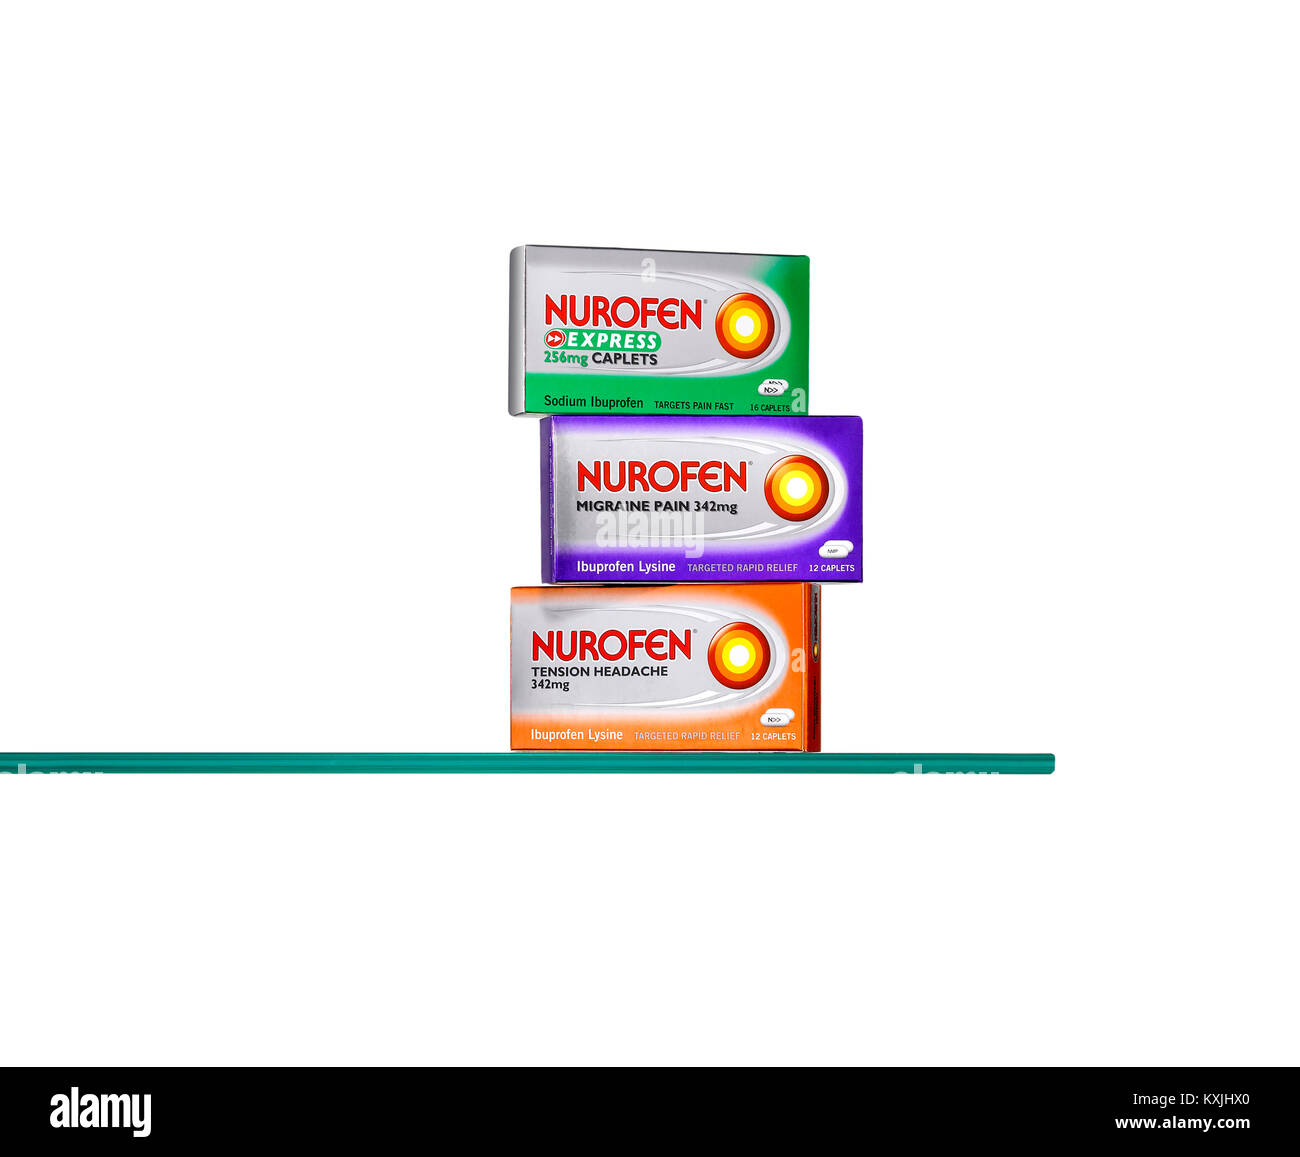 A glass shelf showing a selection of popular medicines - Stock Image